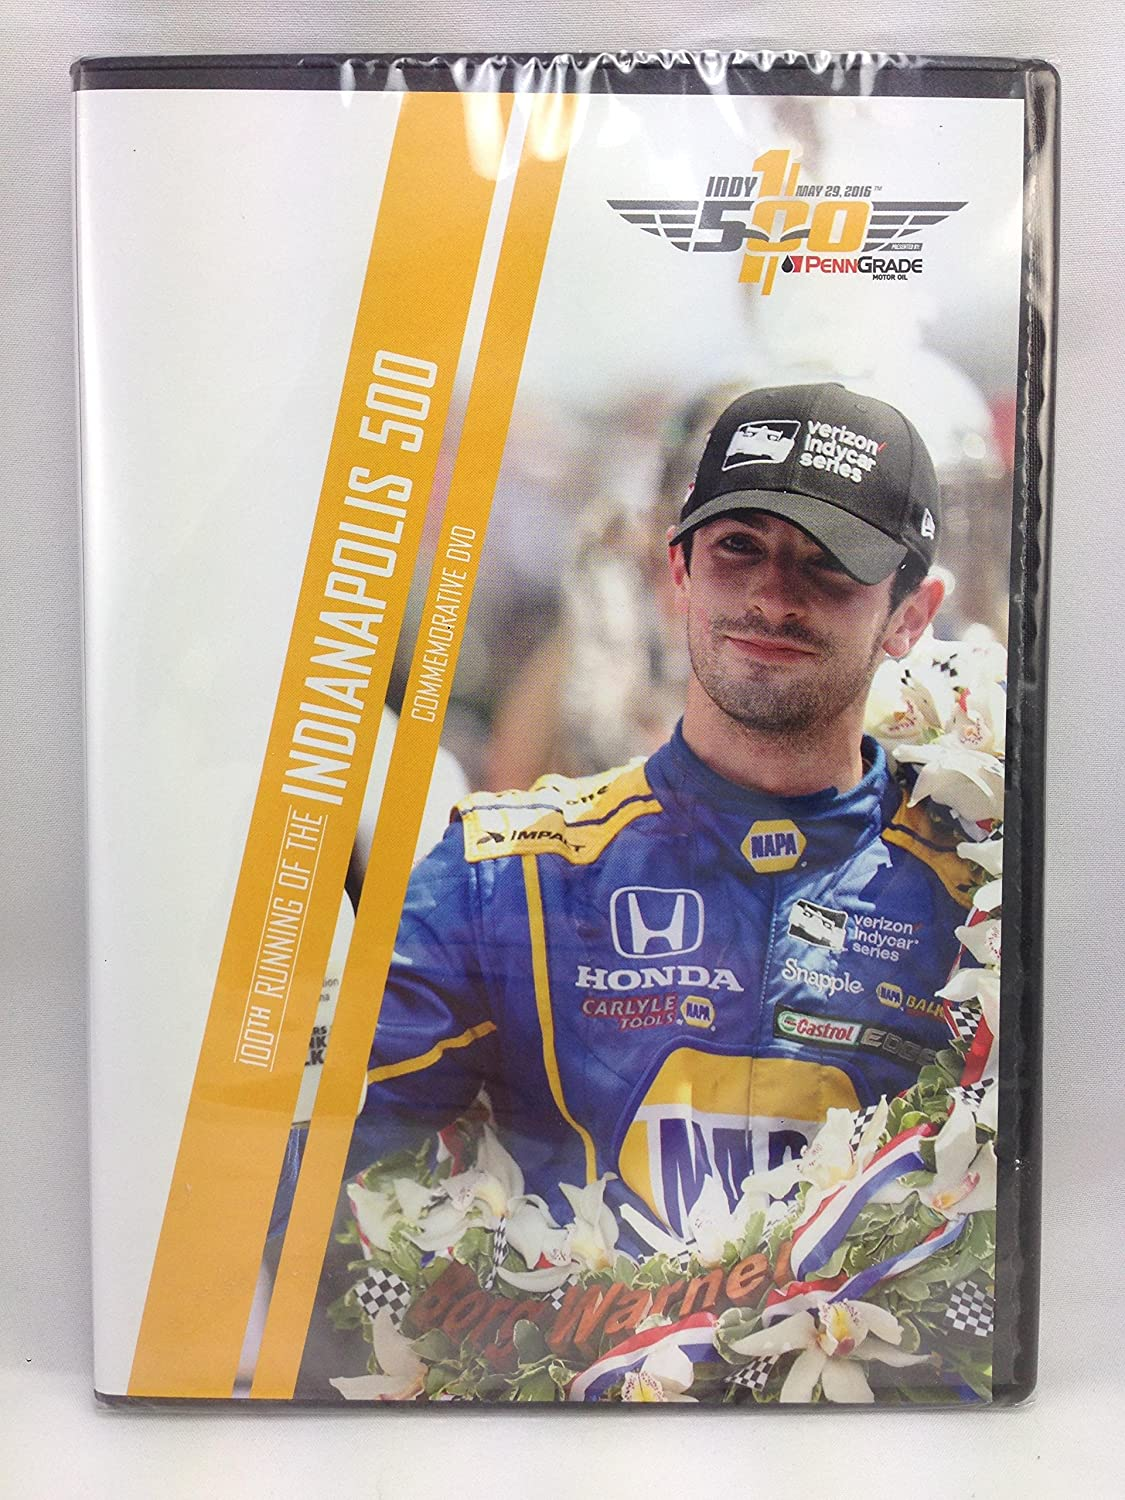 100th Running of the Indianapolis 500 Commemorative DVD